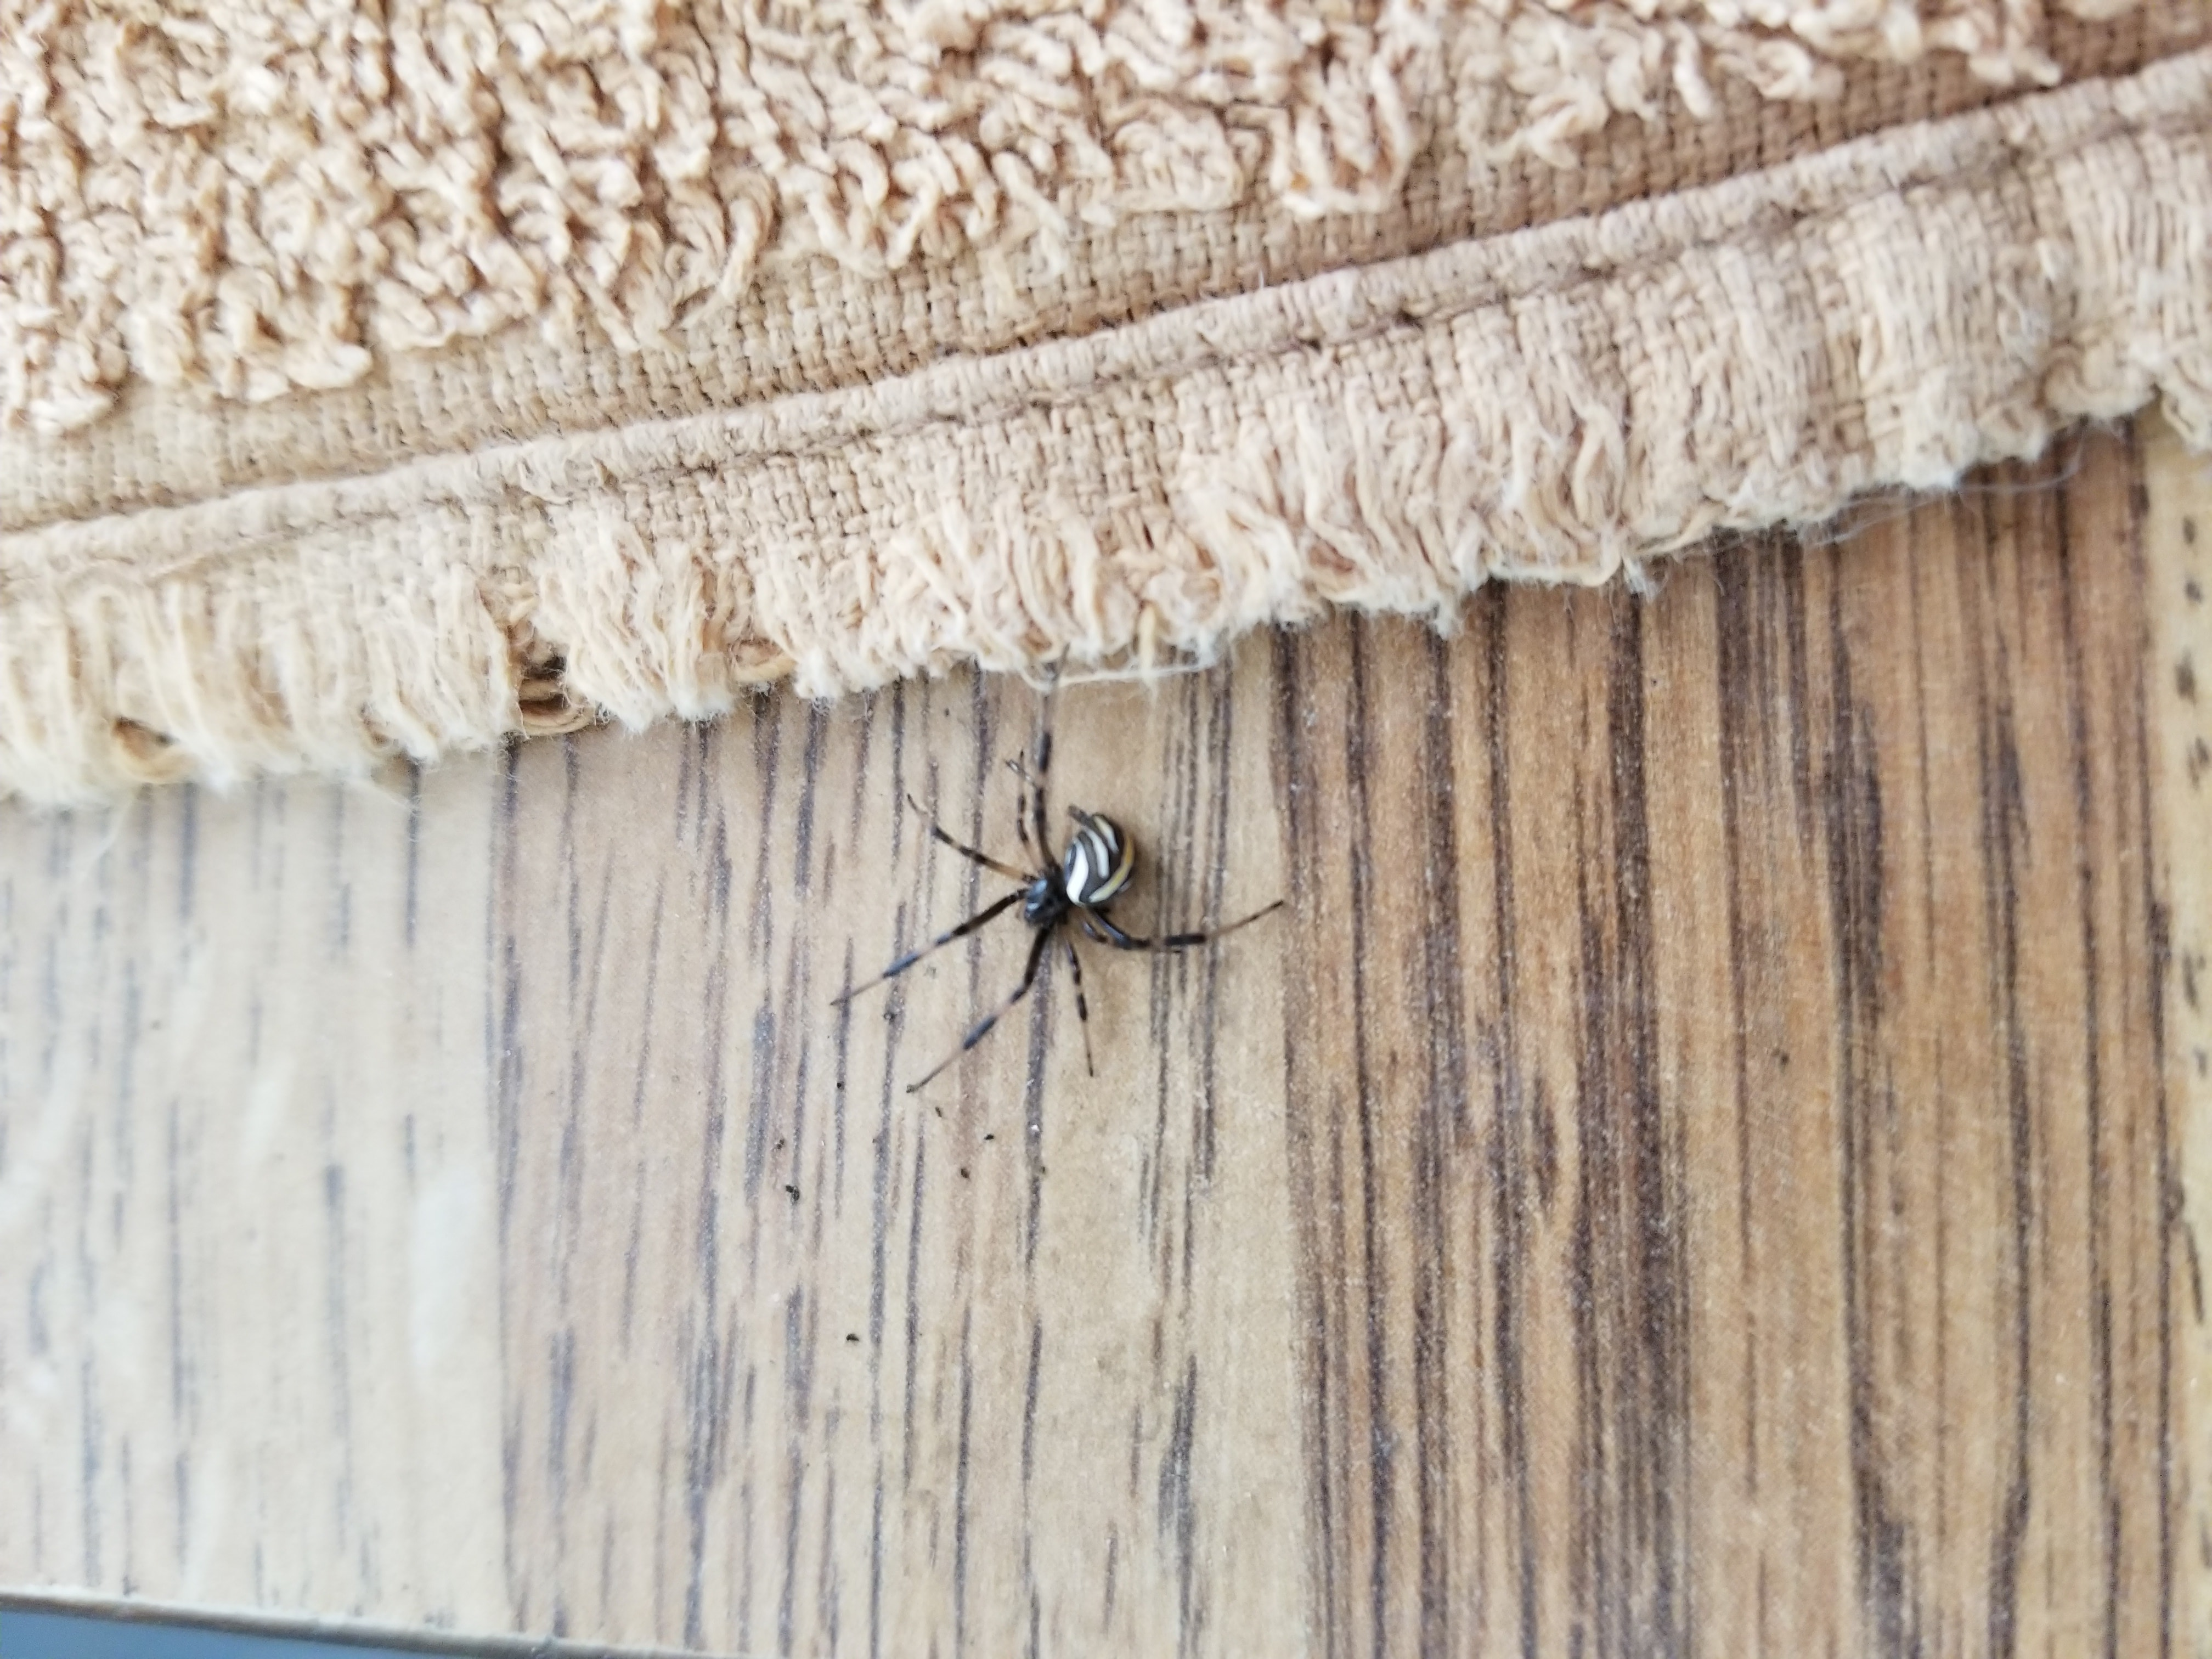 Picture of Latrodectus hesperus (Western Black Widow) - Lateral